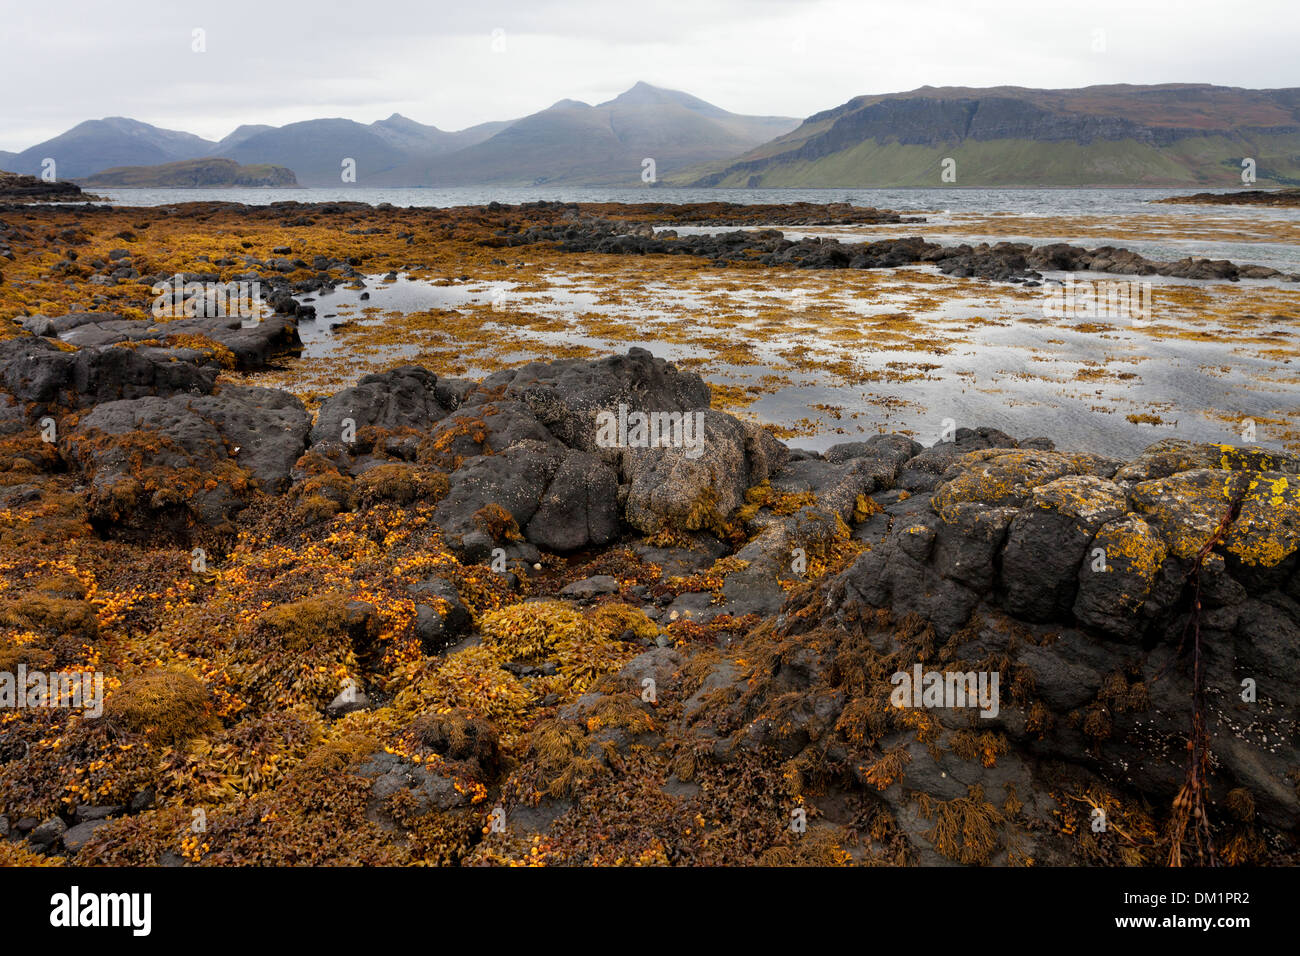 The island of Ulva, looking towards Ben More on the isle of Mull - Stock Image